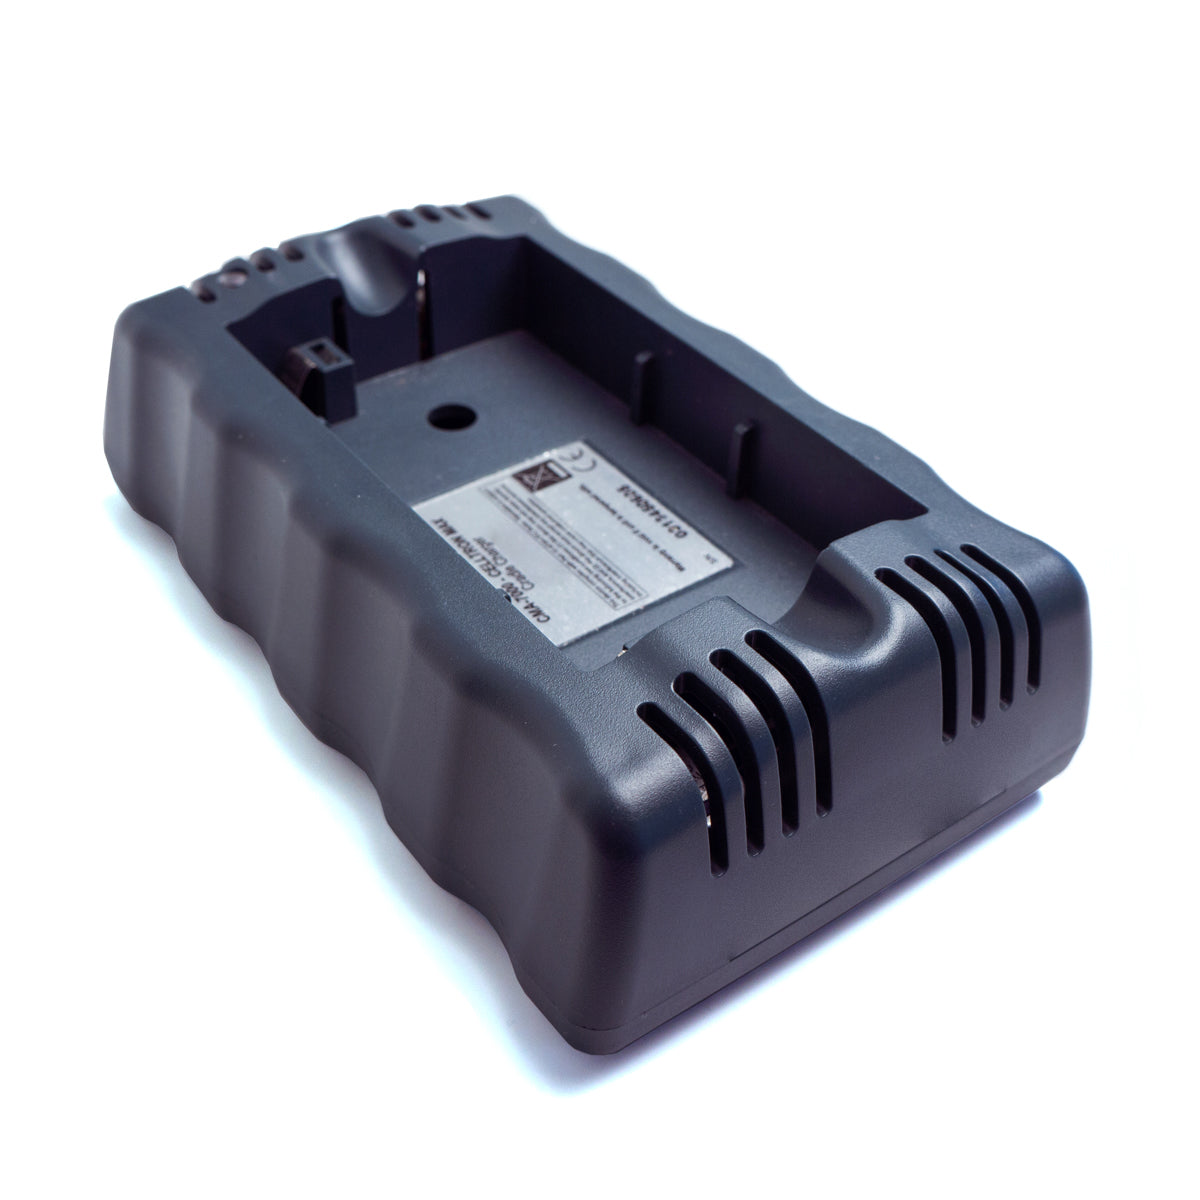 CA096:  Desktop Rapid Battery Charger